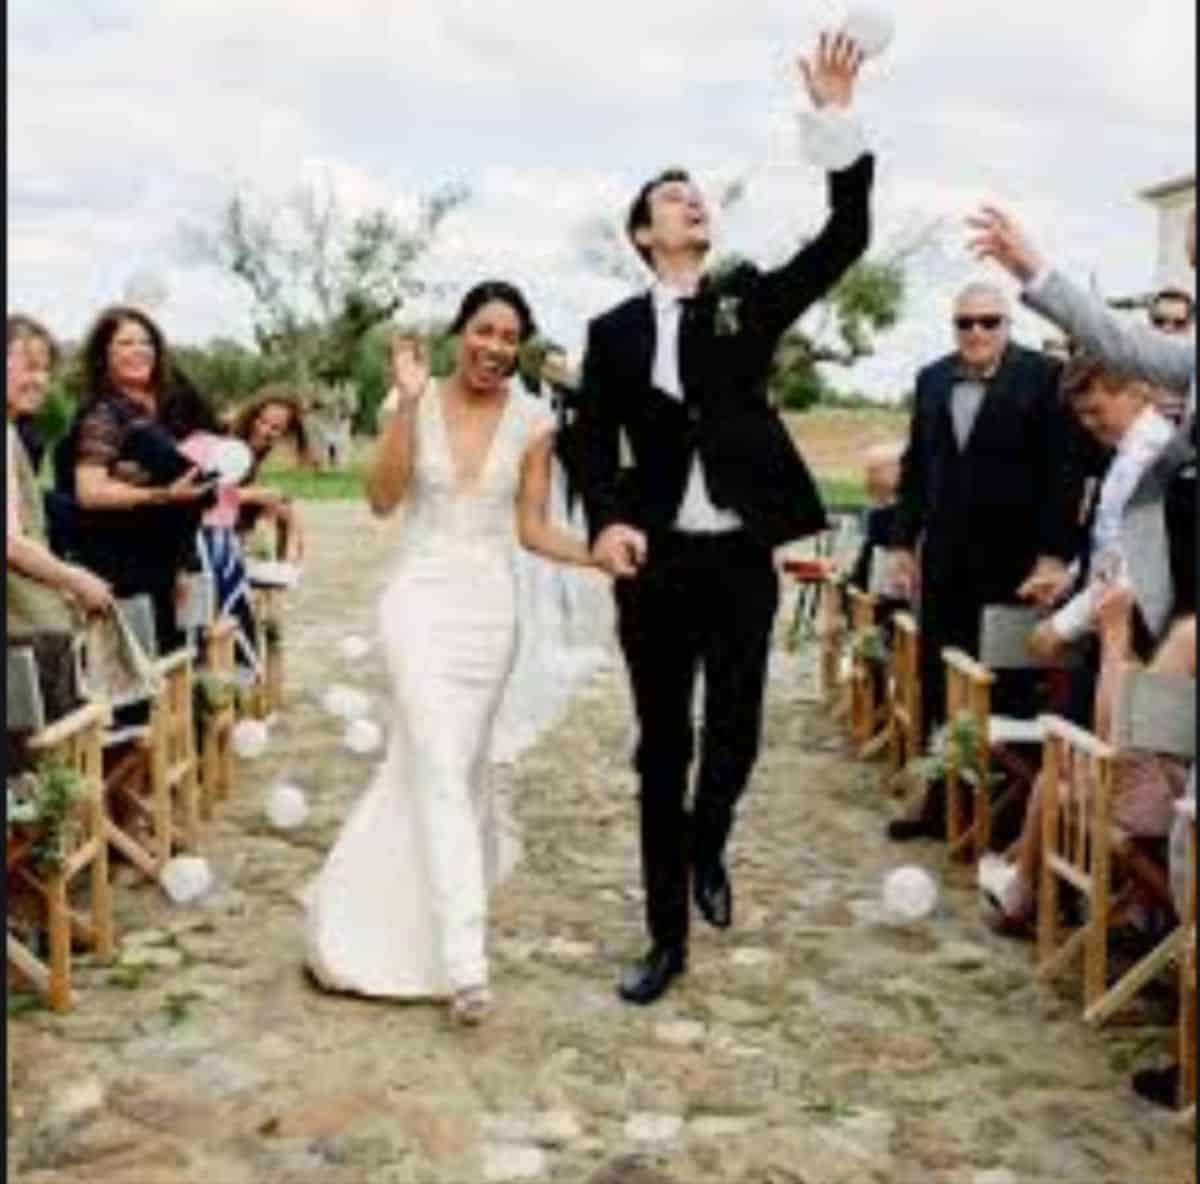 Do Parents Still Pay For Weddings?